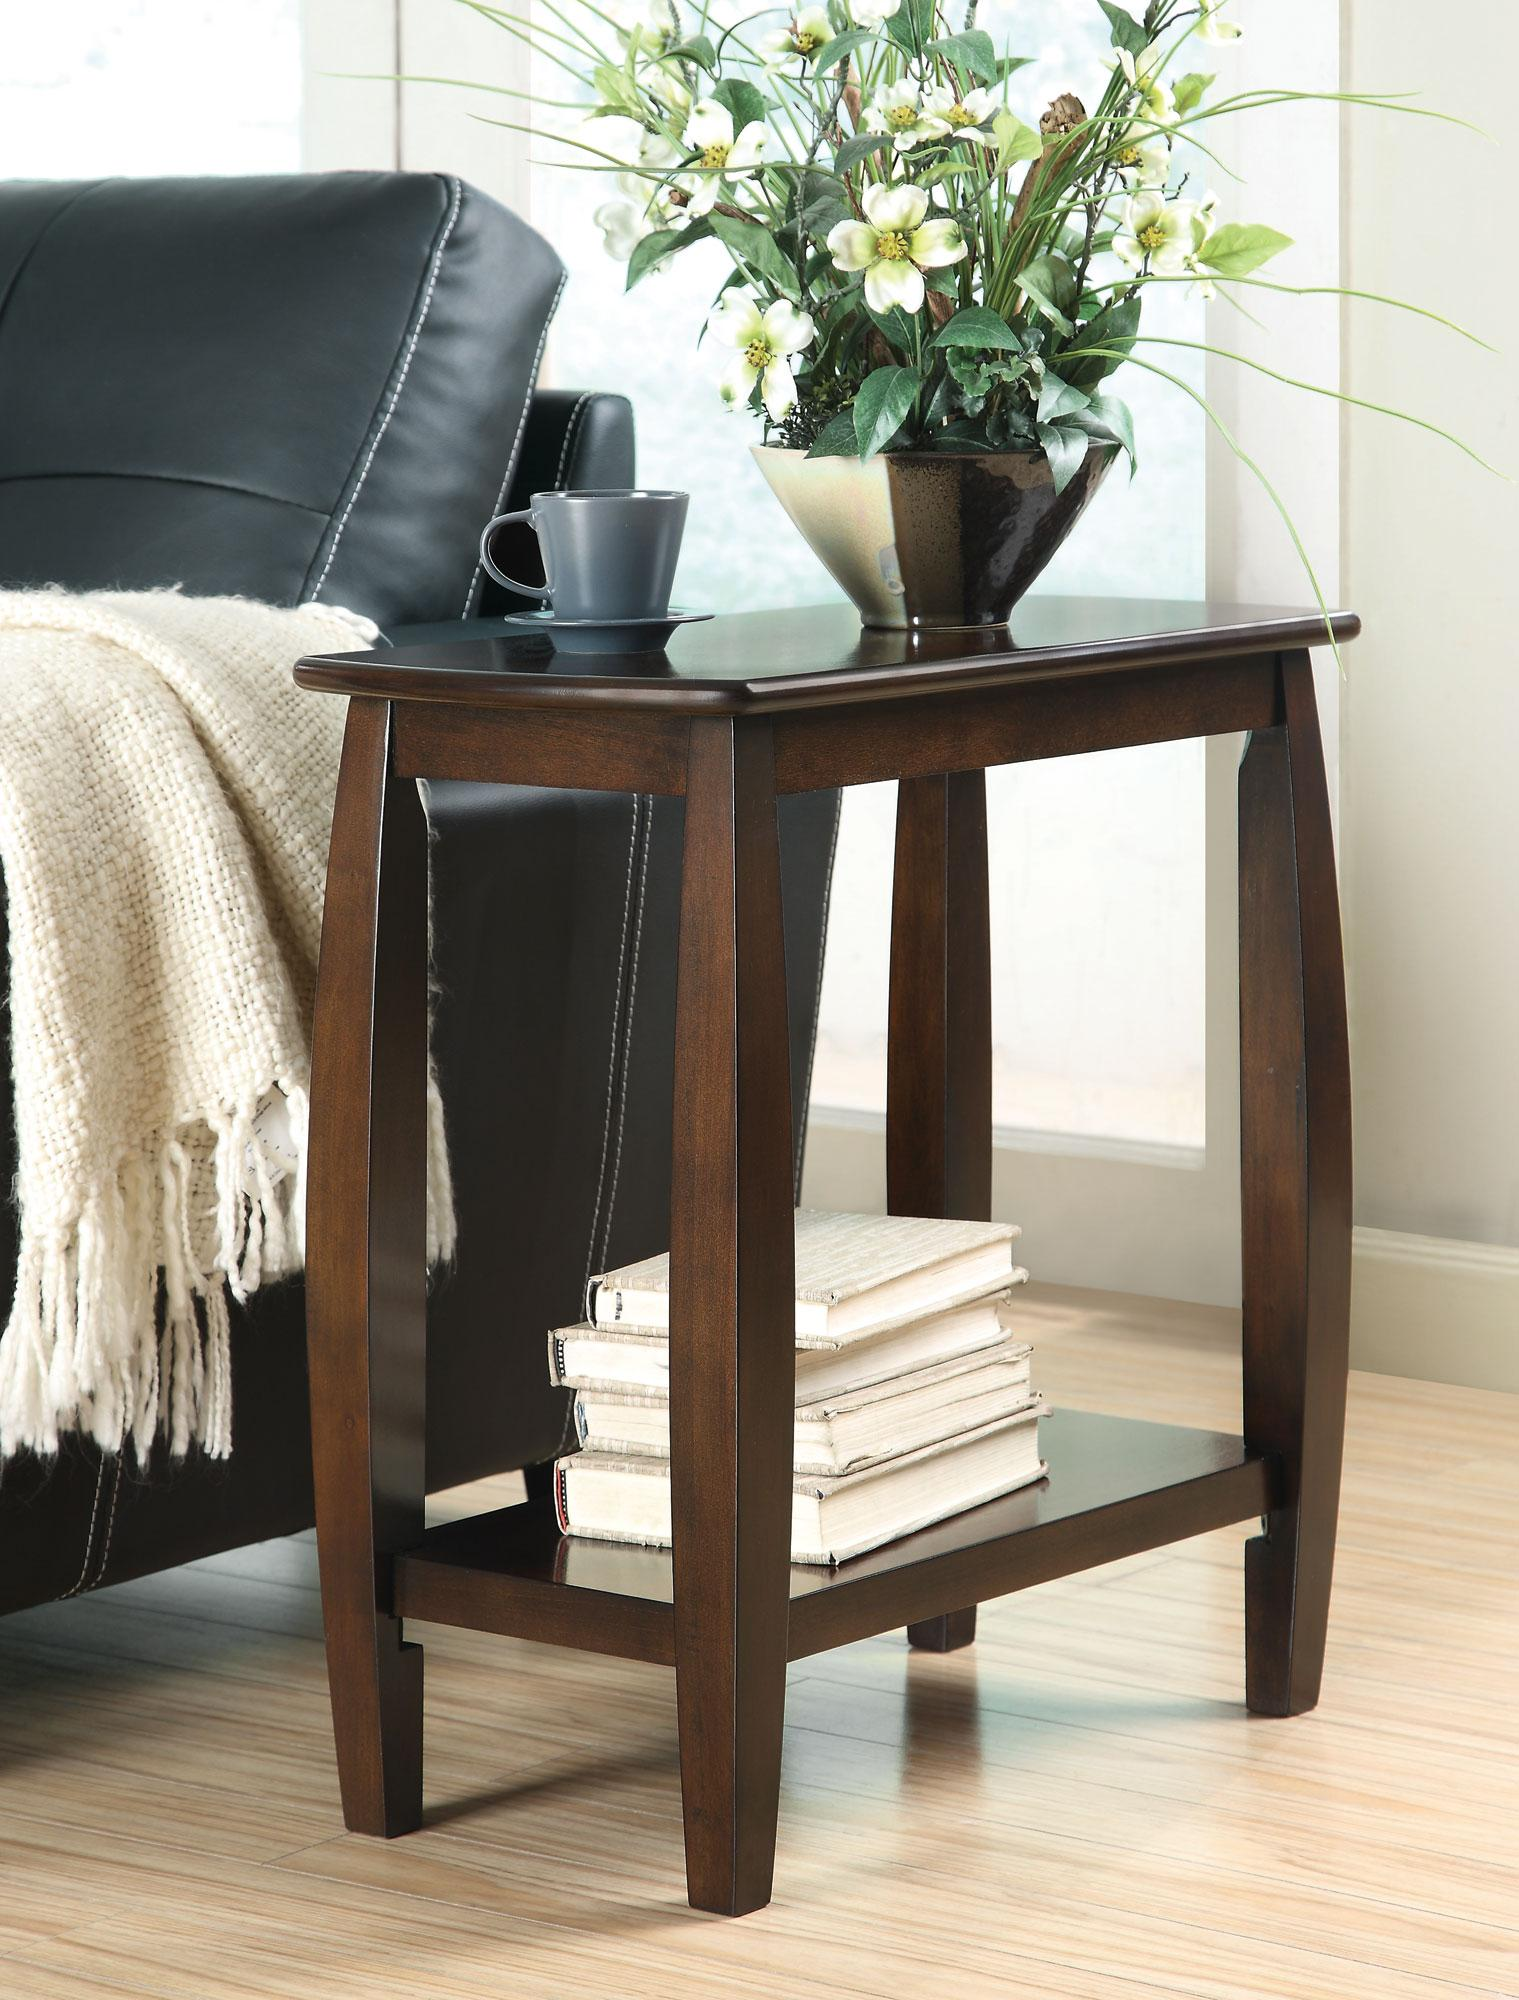 Chair Side Table Coaster Accent Tables Contemporary Bowed Leg Chairside